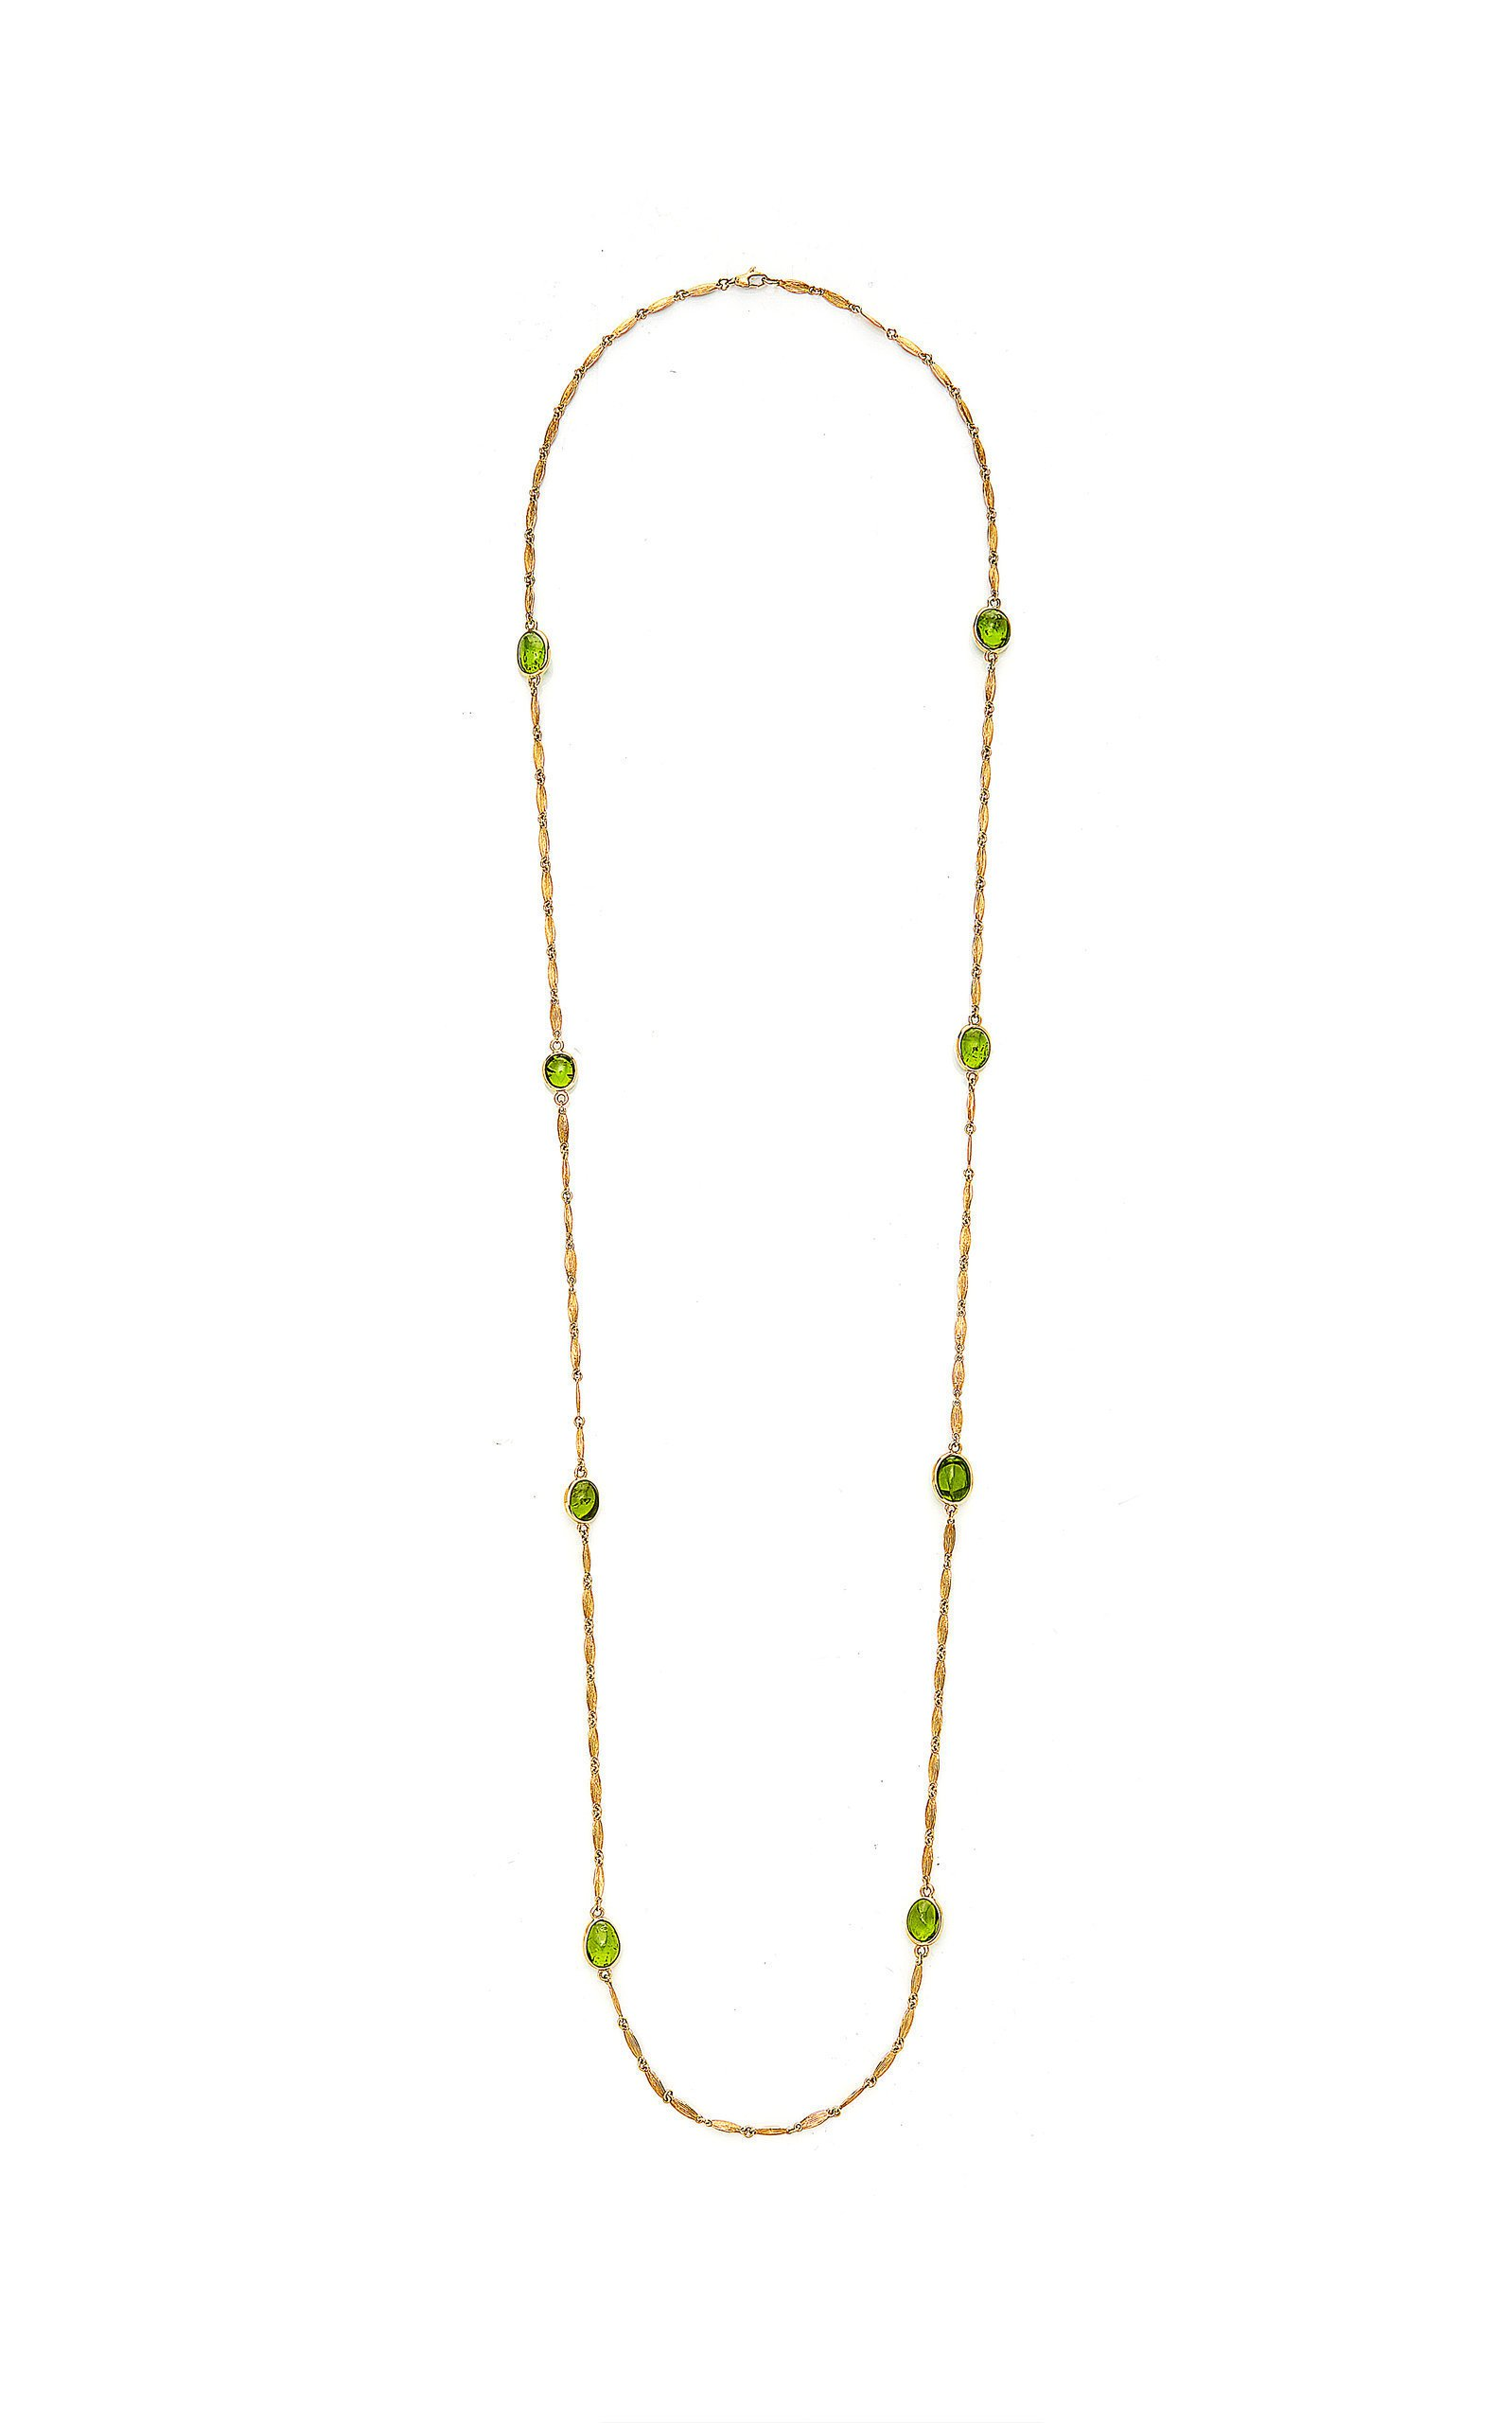 Goshwara G-One' Textured Leaf Chain Necklace With Peridot Tumble